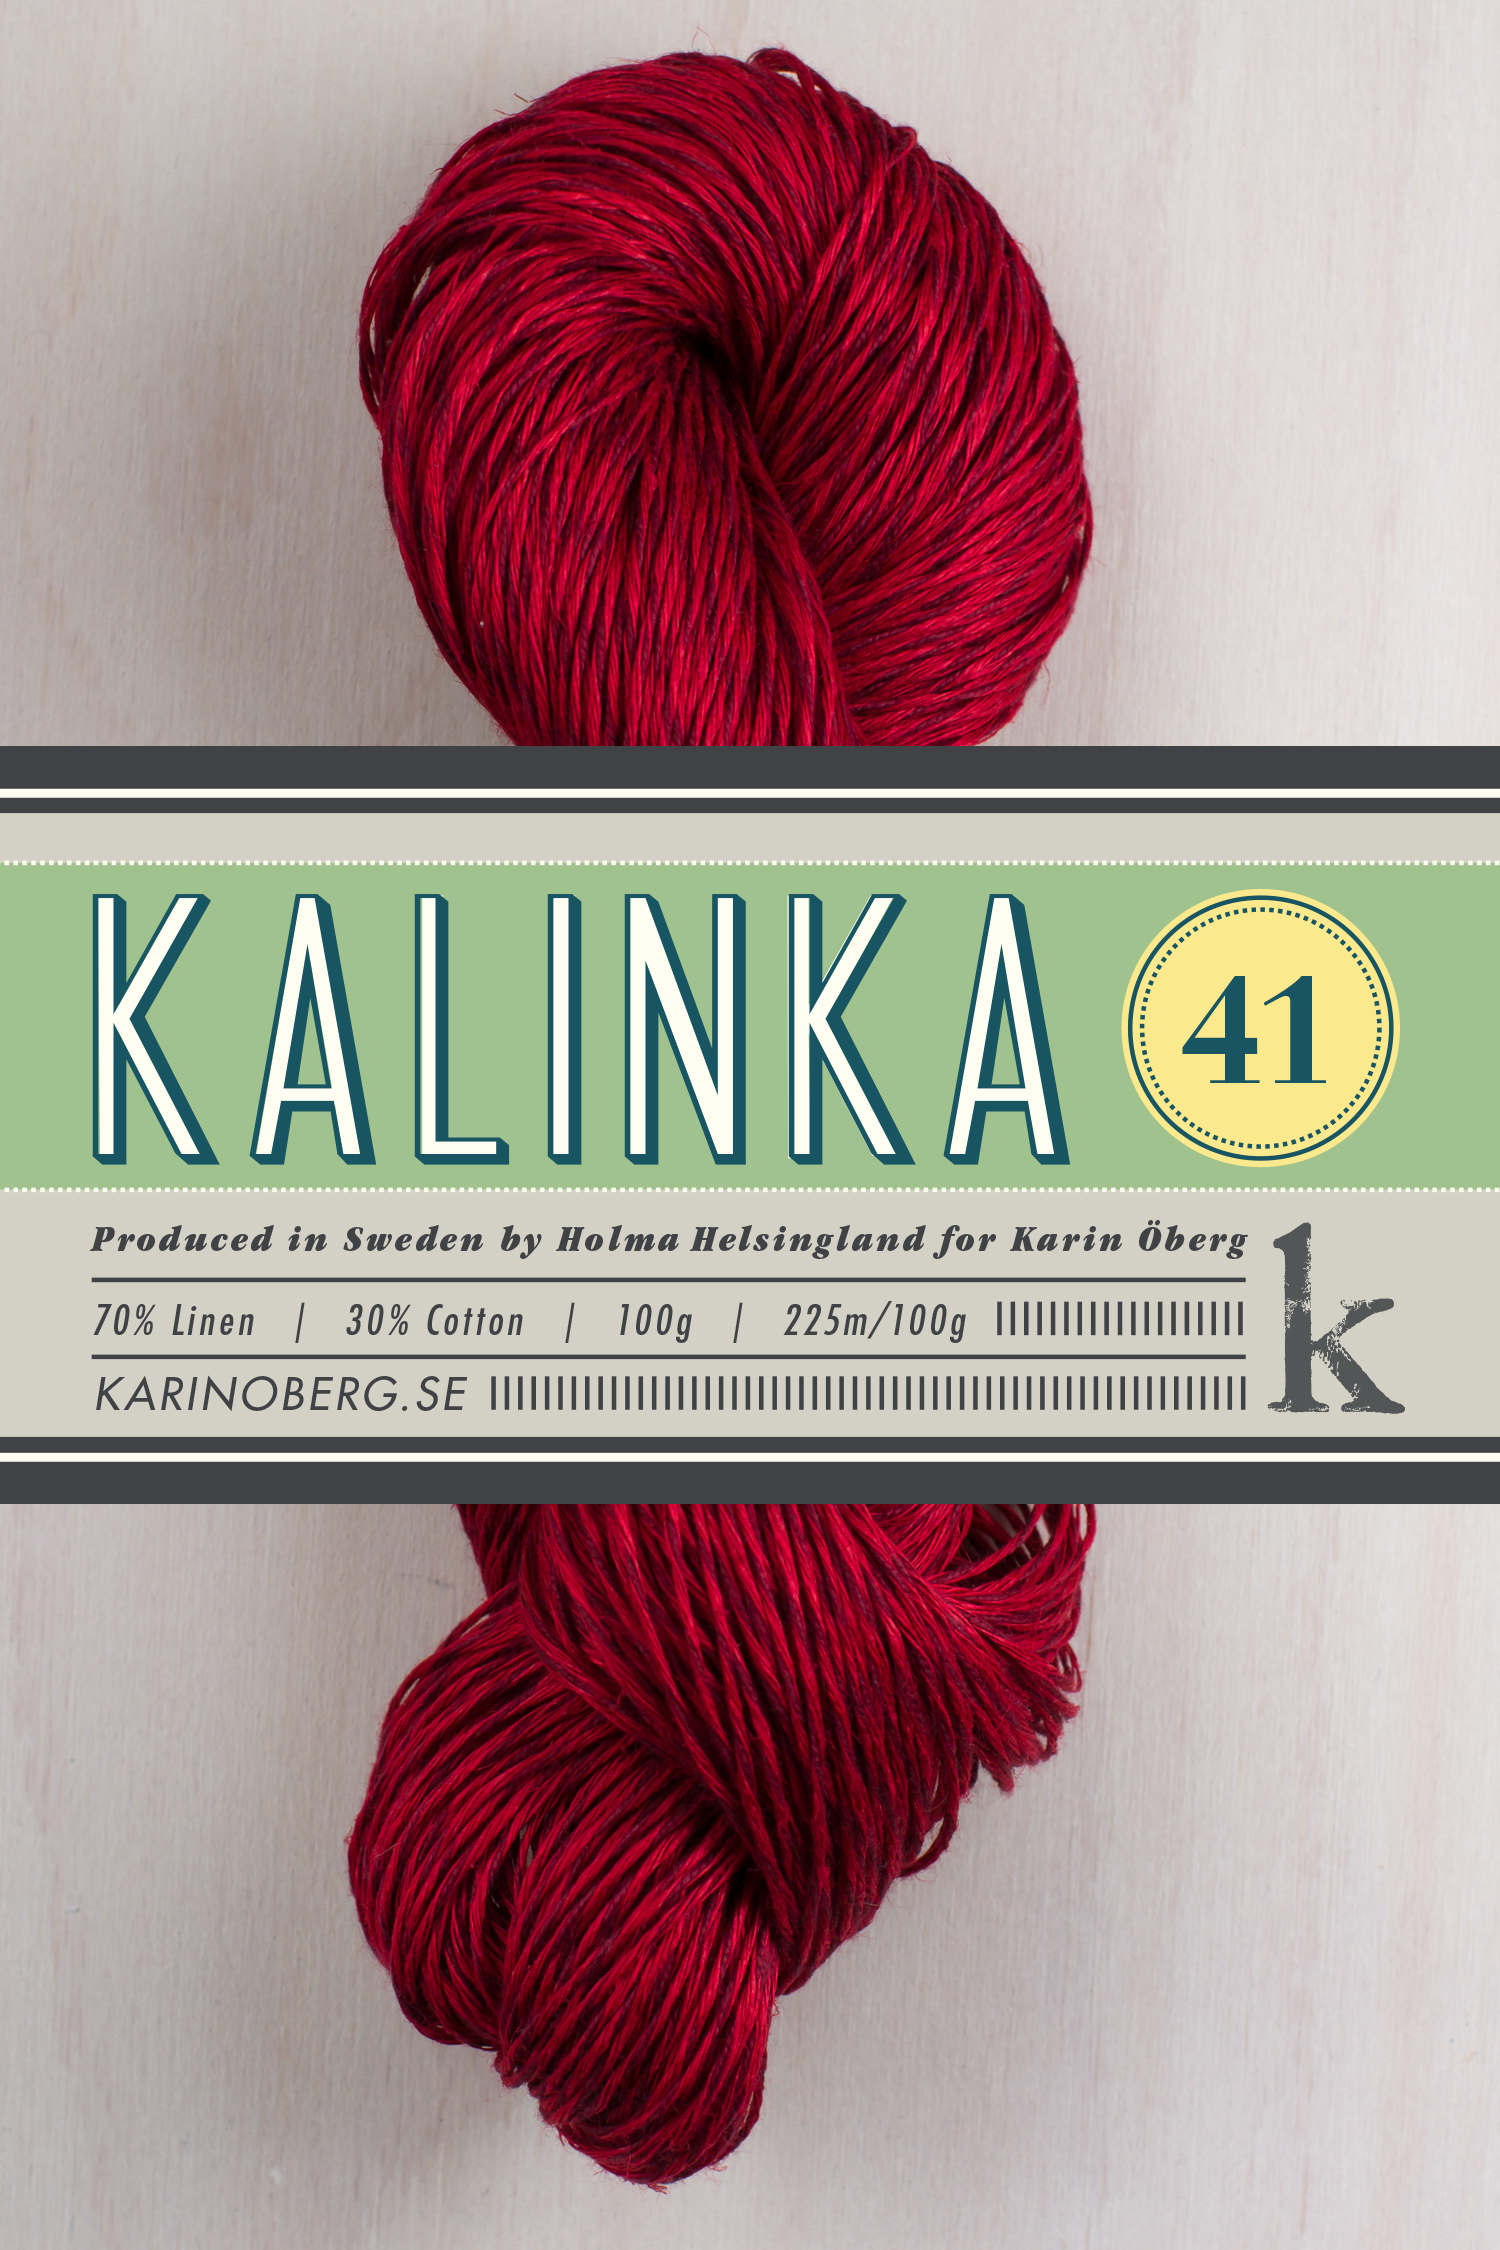 Kalinka 41, 70% linen 30% cotton   (click picture for more colors)    In 2013 I launched Kalinka 41, a linen and cotton mix especially created for hand knitting.    Yarn facts  225sts/100g, gauge approx. 20sts/10cm on 3,5mm needles    Washing instructions  Machine wash cold or hand wash with normal cycle.